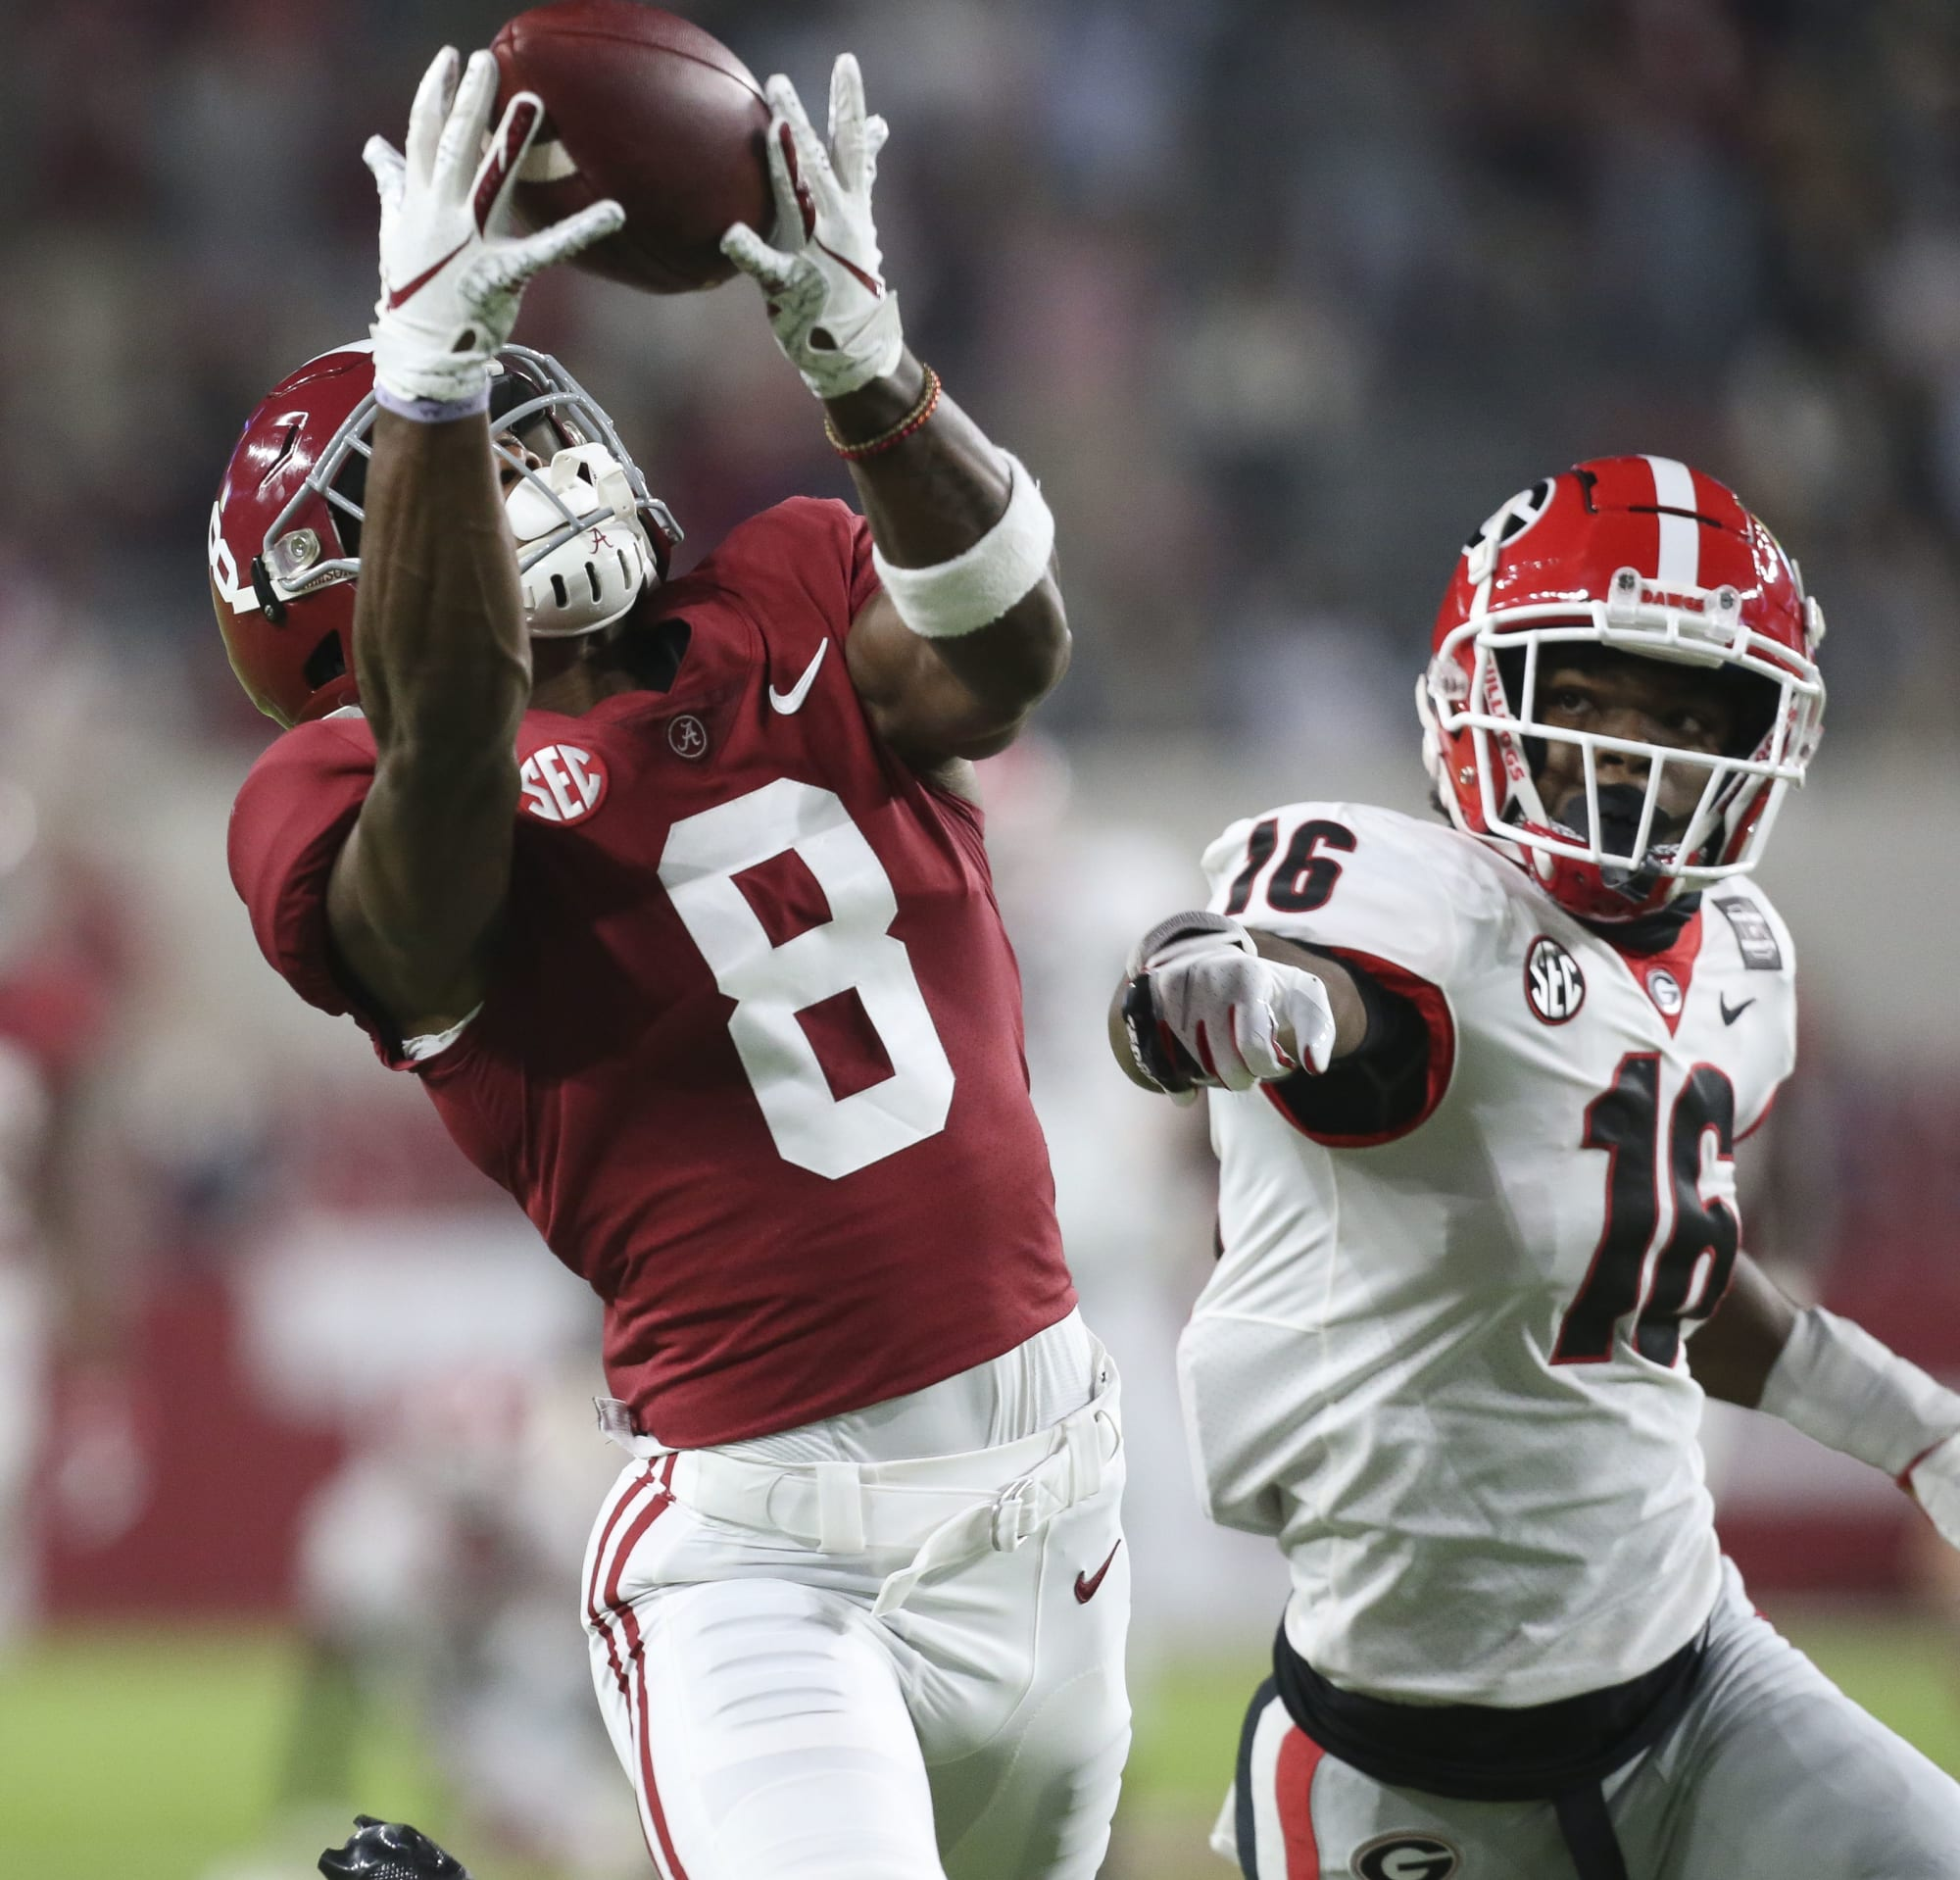 Alabama Football: After '20 season Tide offense could be feast to famine